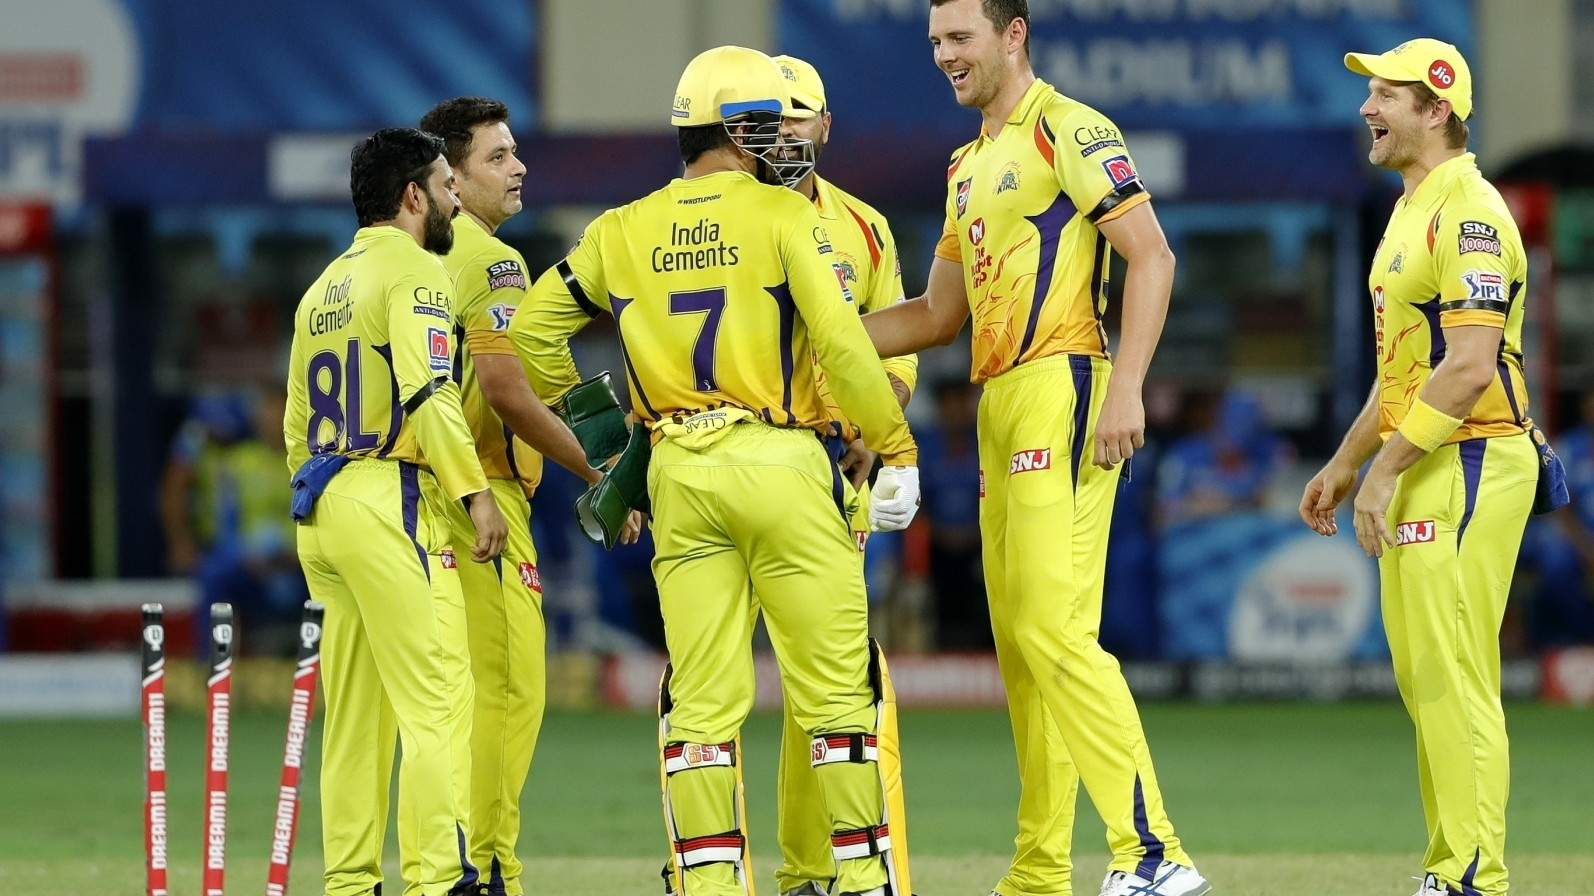 IPL 2020: Chennai Super Kings thank fans for making them most tweeted team on Twitter